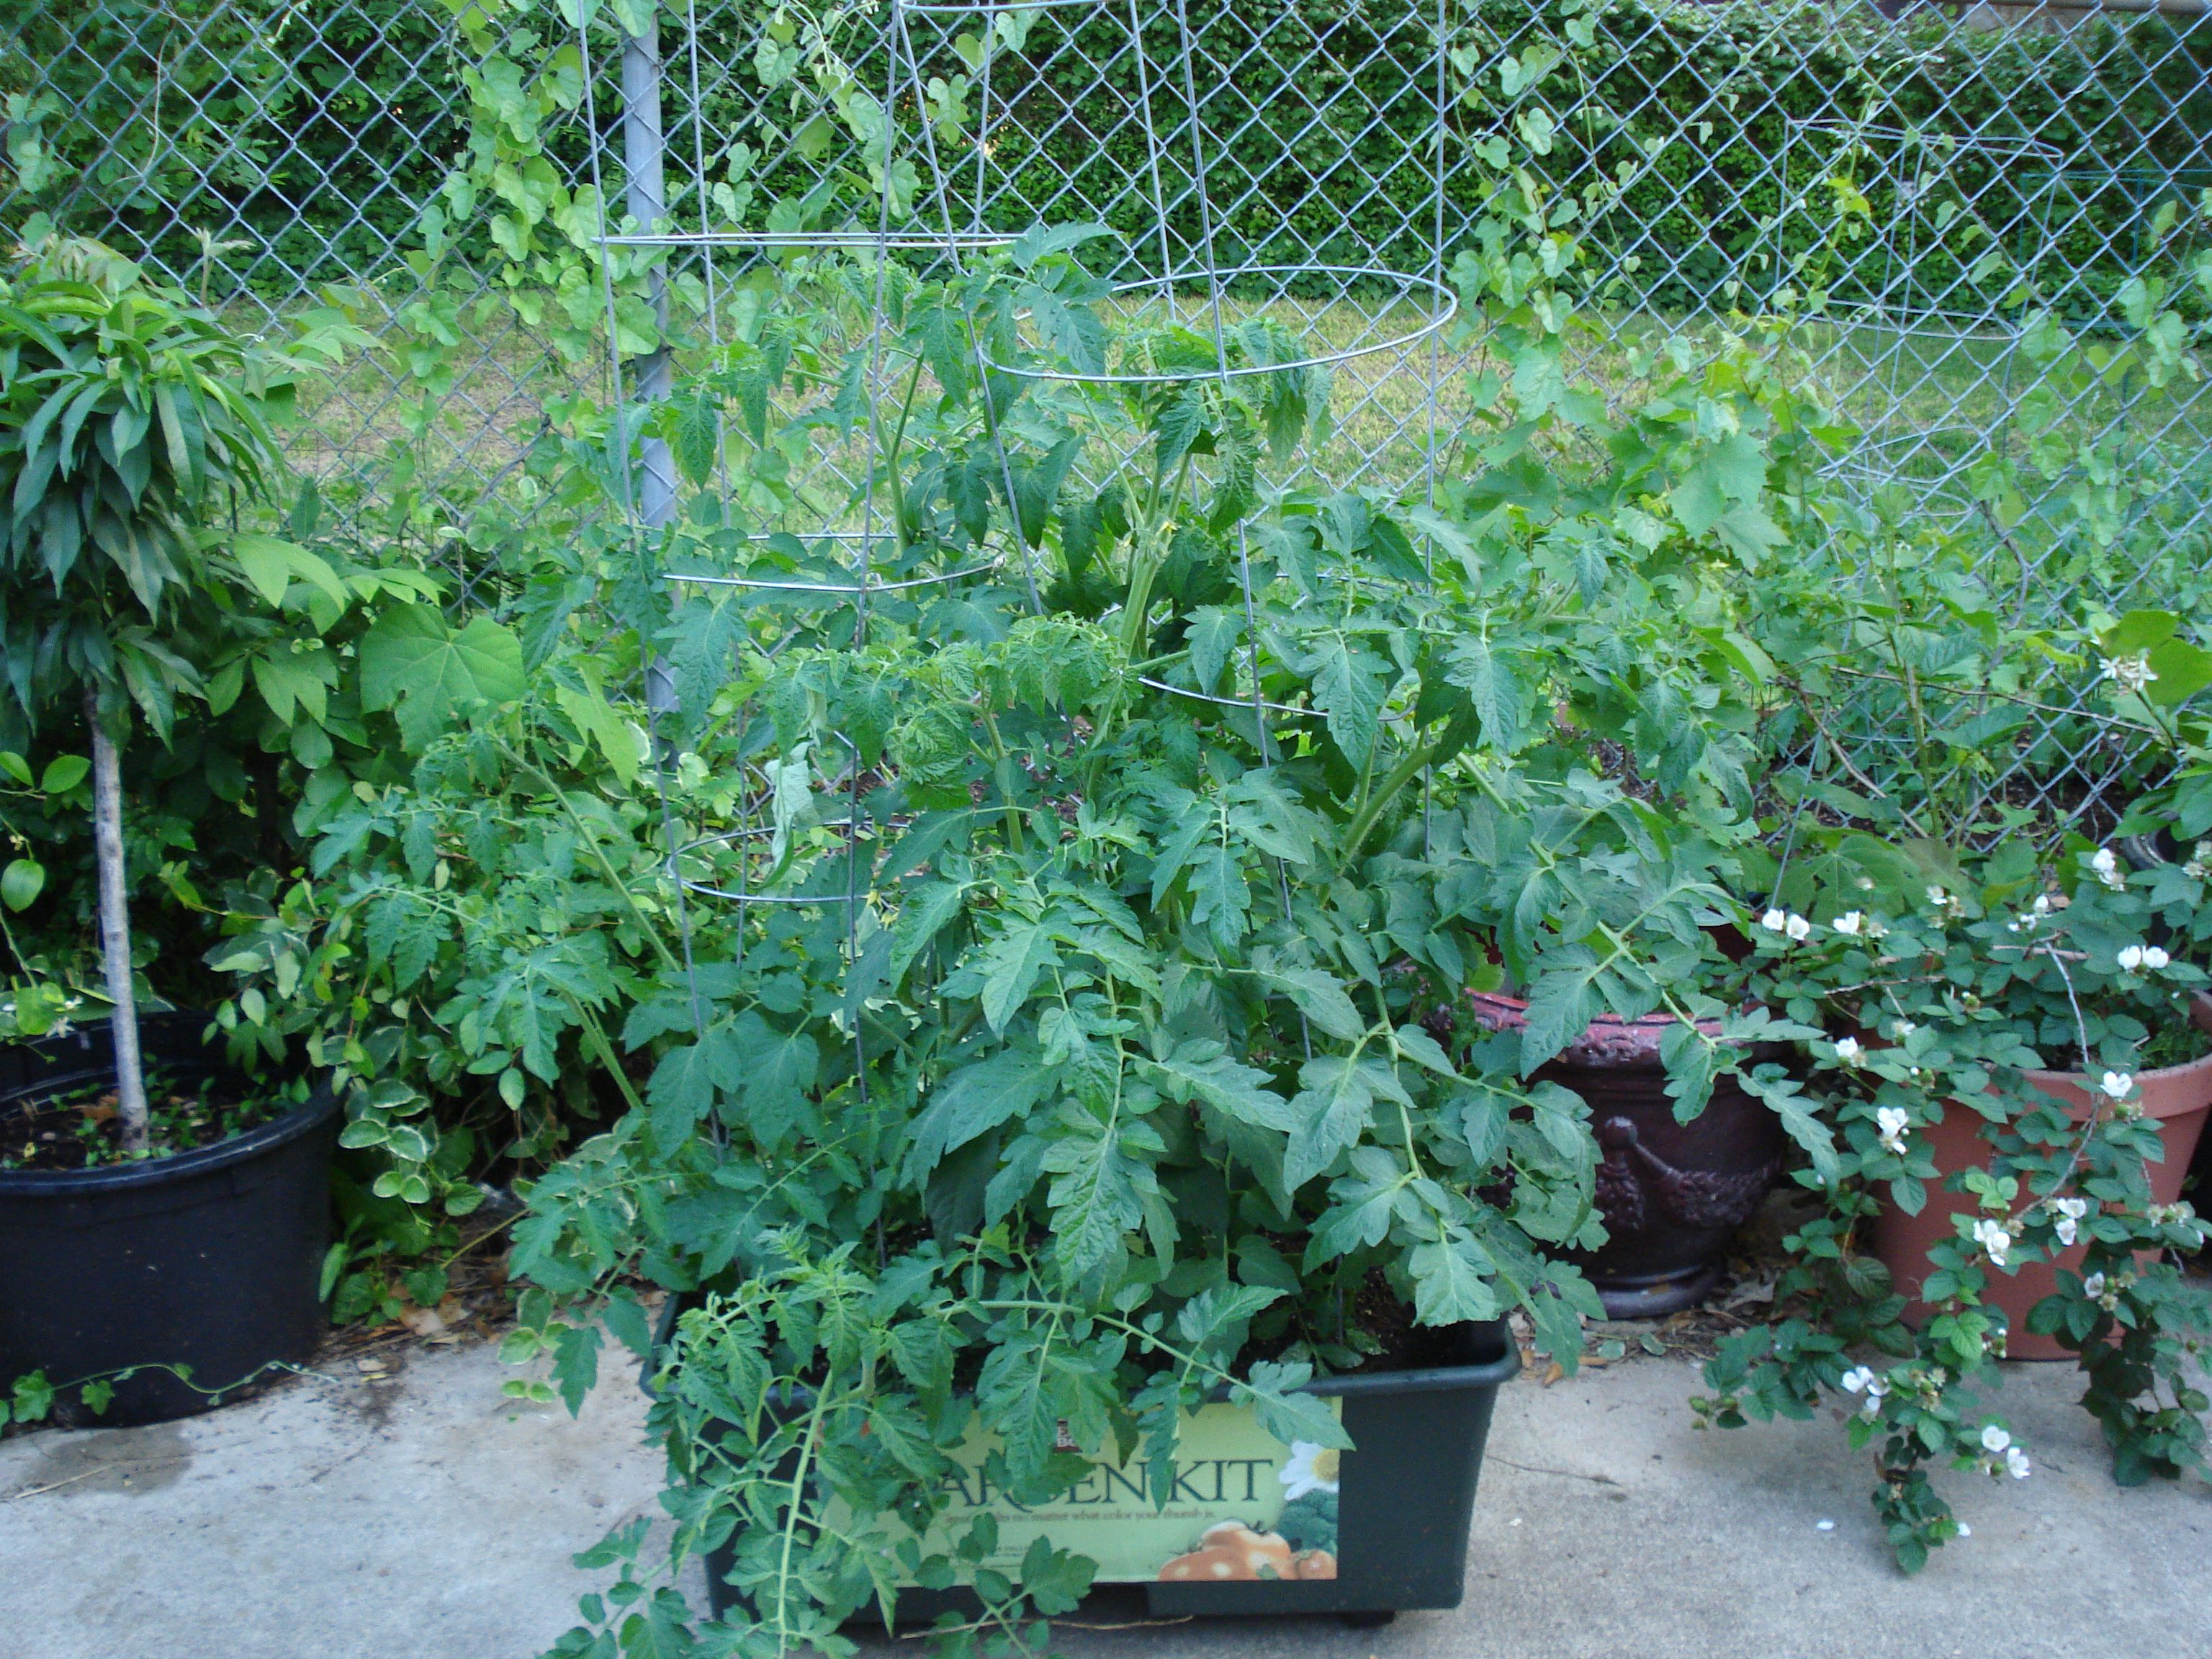 Tomatoes And Other Veggies Love The Earthbox.